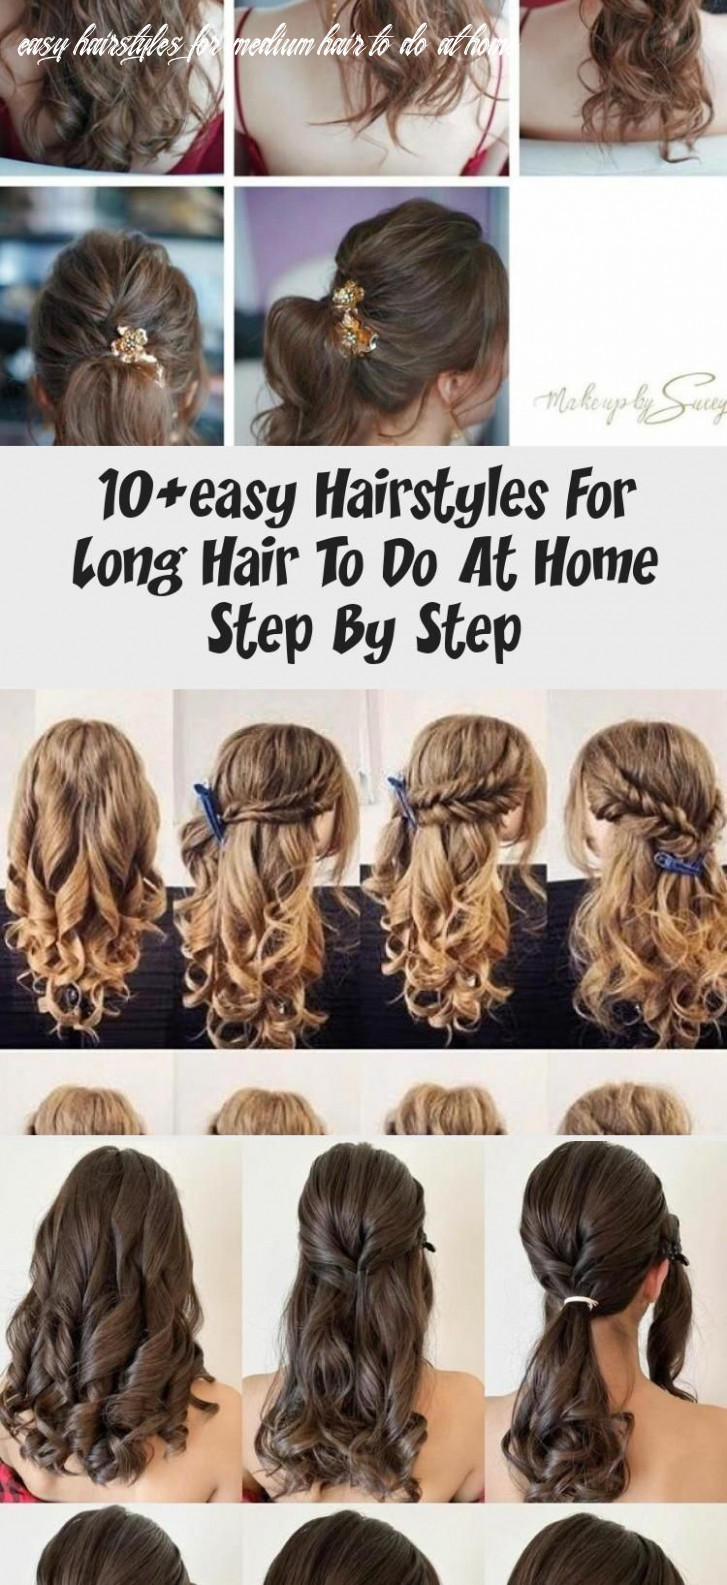 9+easy Hairstyles For Long Hair To Do At Home Step By Step in ...